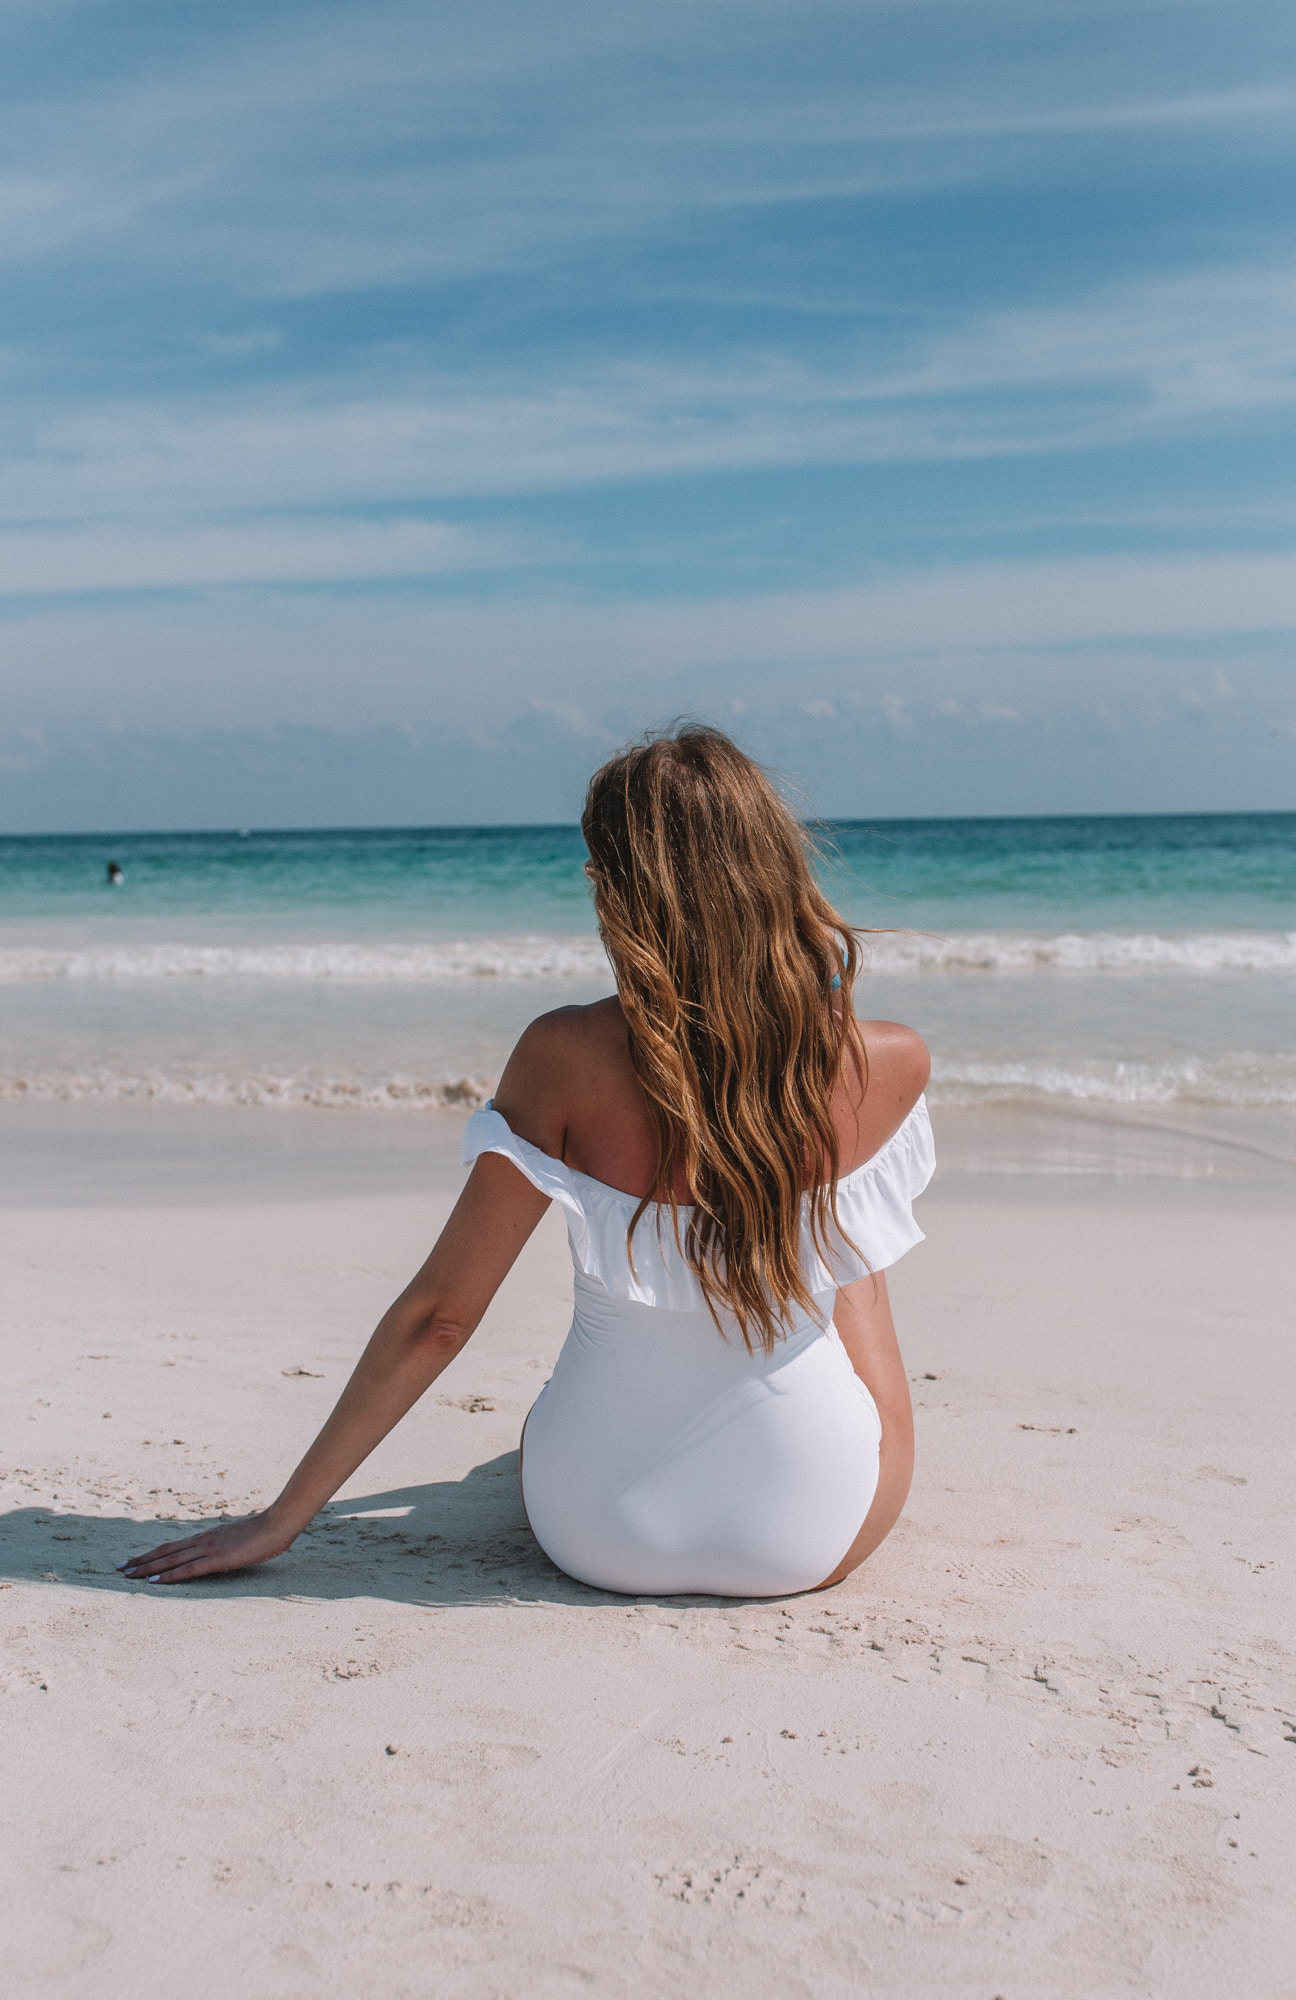 Tulum Playa Paraiso Beach - I wore a white off the shoulder one piece swimsuit from La Vie en Rose to relax on the white sandy beach of Tulum, Mexico.